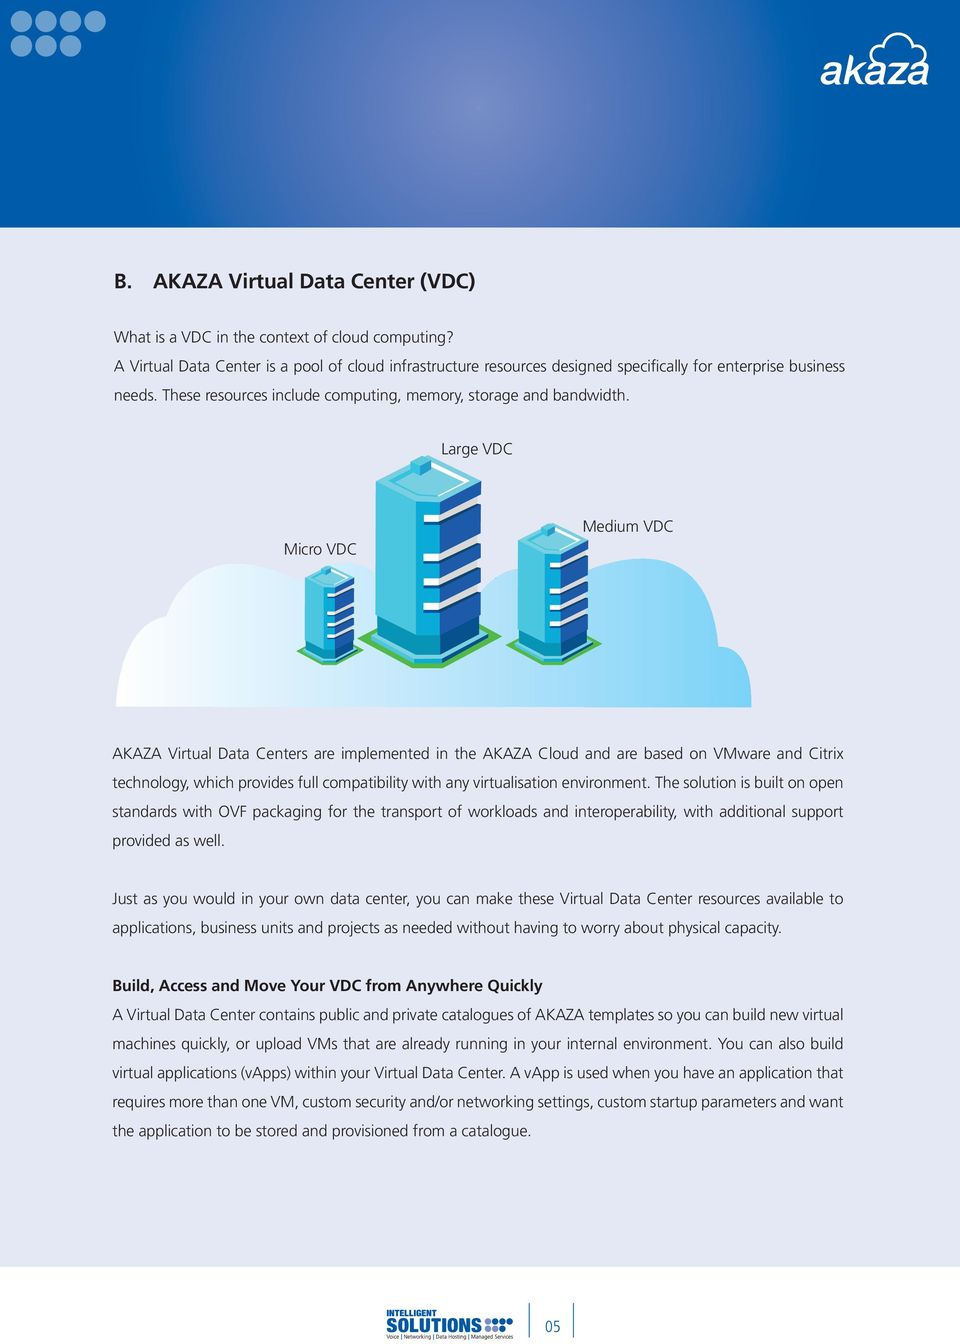 Large VDC Micro VDC Medium VDC AKAZA Virtual Data Centers are implemented in the AKAZA Cloud and are based on VMware and Citrix technology, which provides full compatibility with any virtualisation